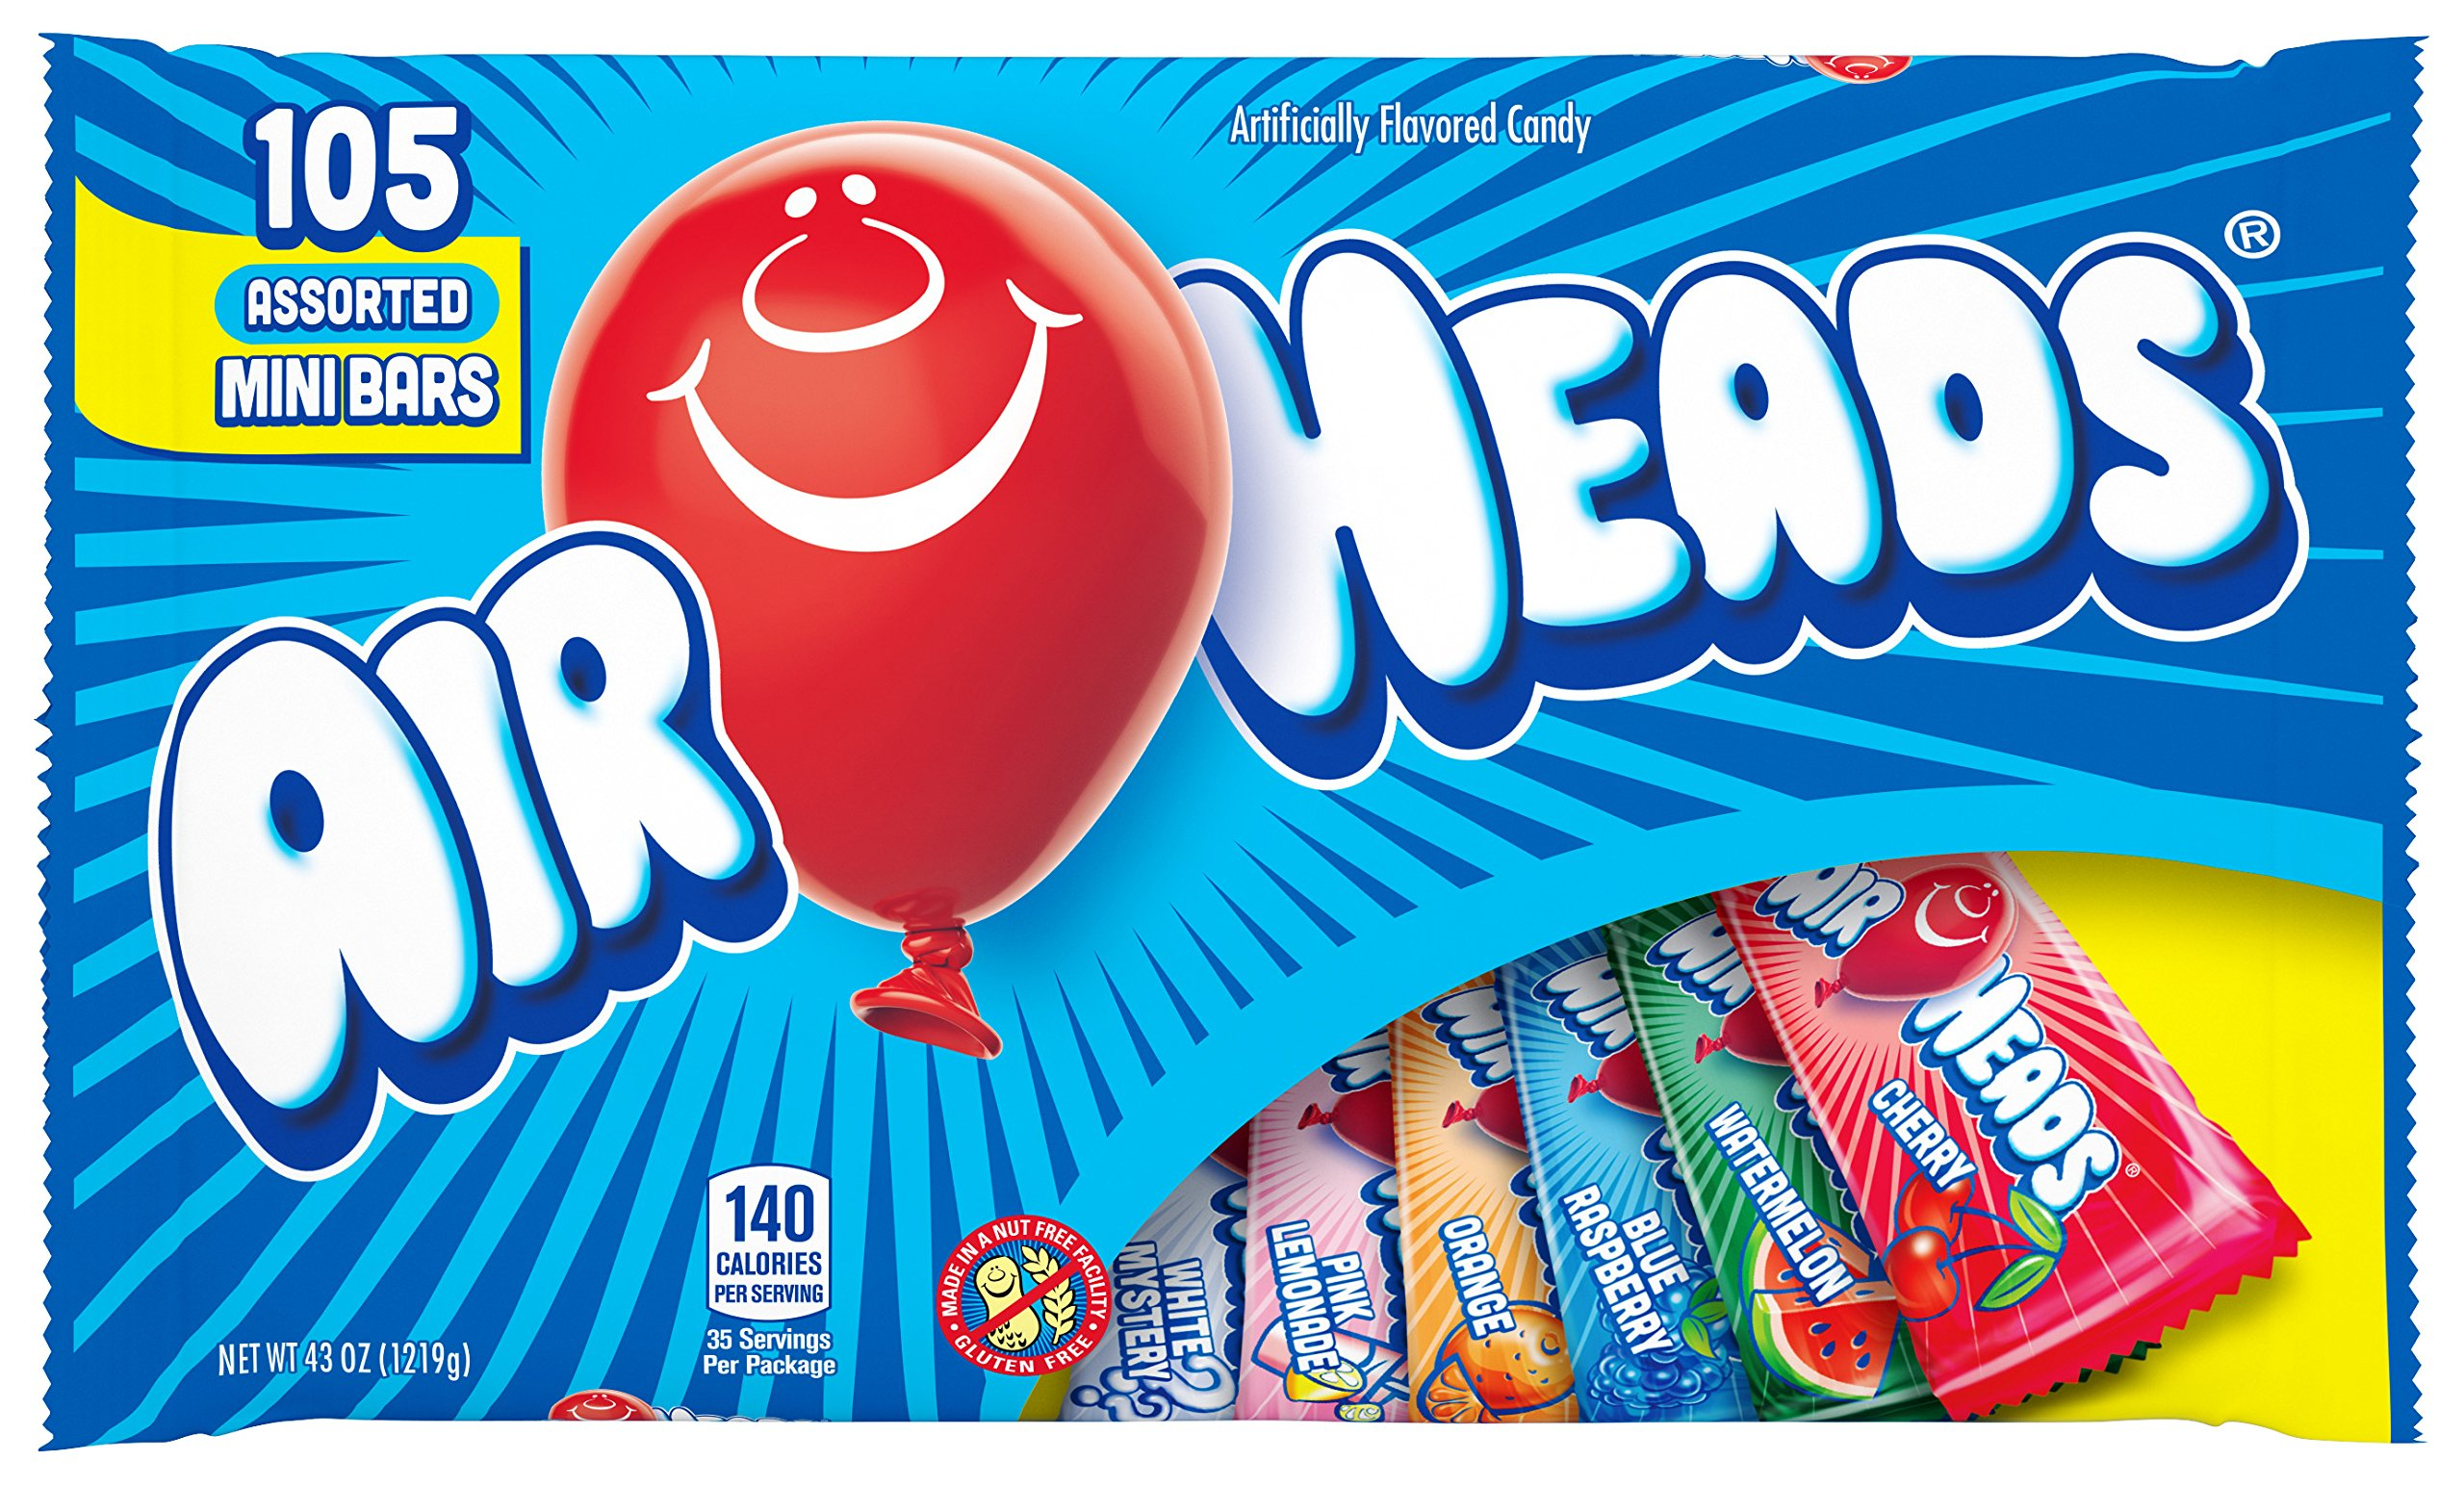 AirHeads Candy Variety Bag, Individually Wrapped Assorted Fruit Mini Bars, 43 oz (Bulk Pack of 8) by Airheads